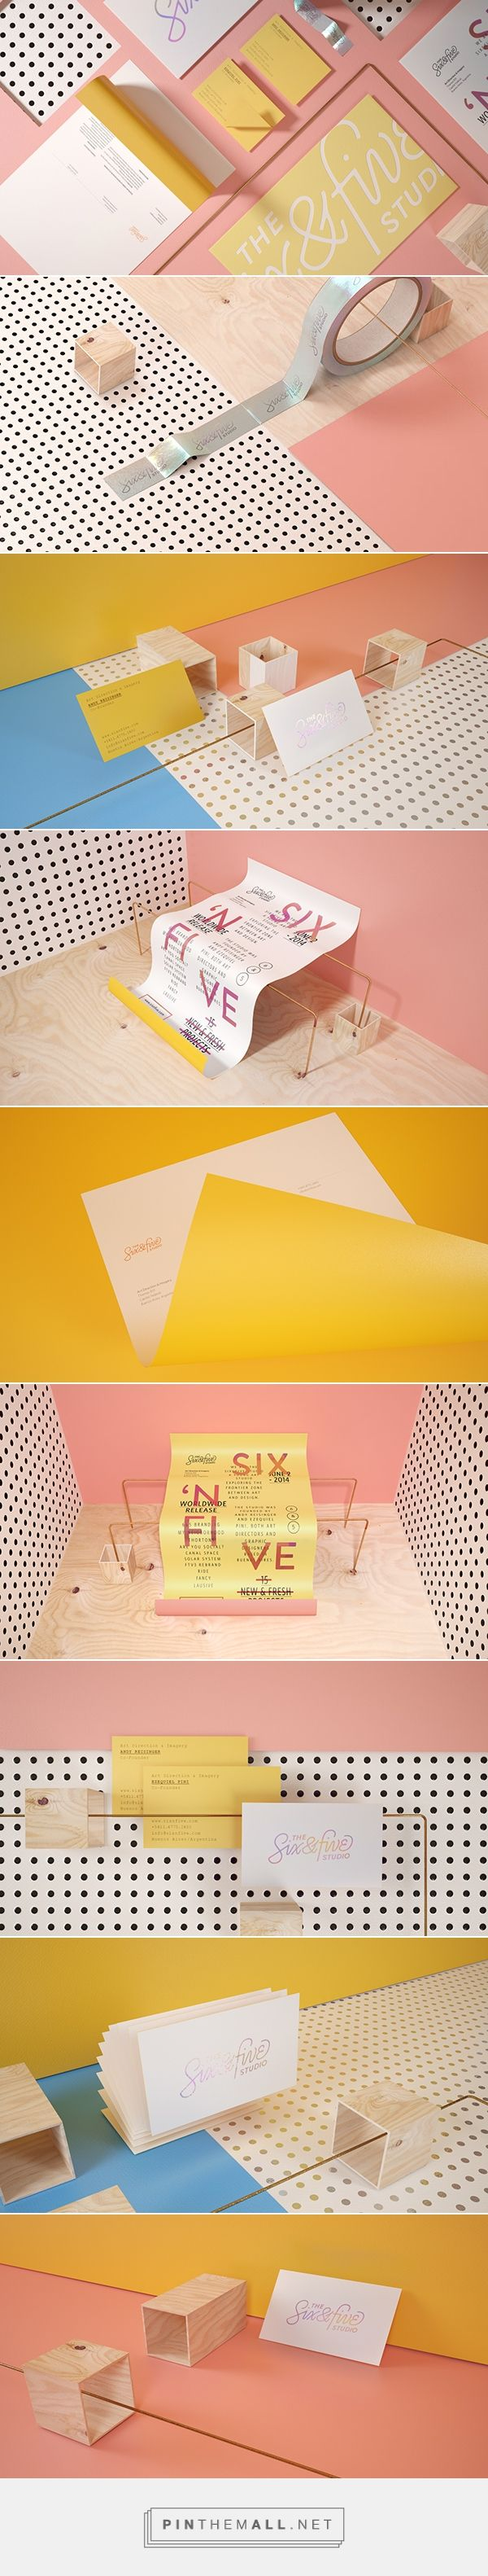 Six N. Five Art Studio Self Branding | Fivestar Branding Agency – Design and Branding Agency & Curated Inspiration Gallery